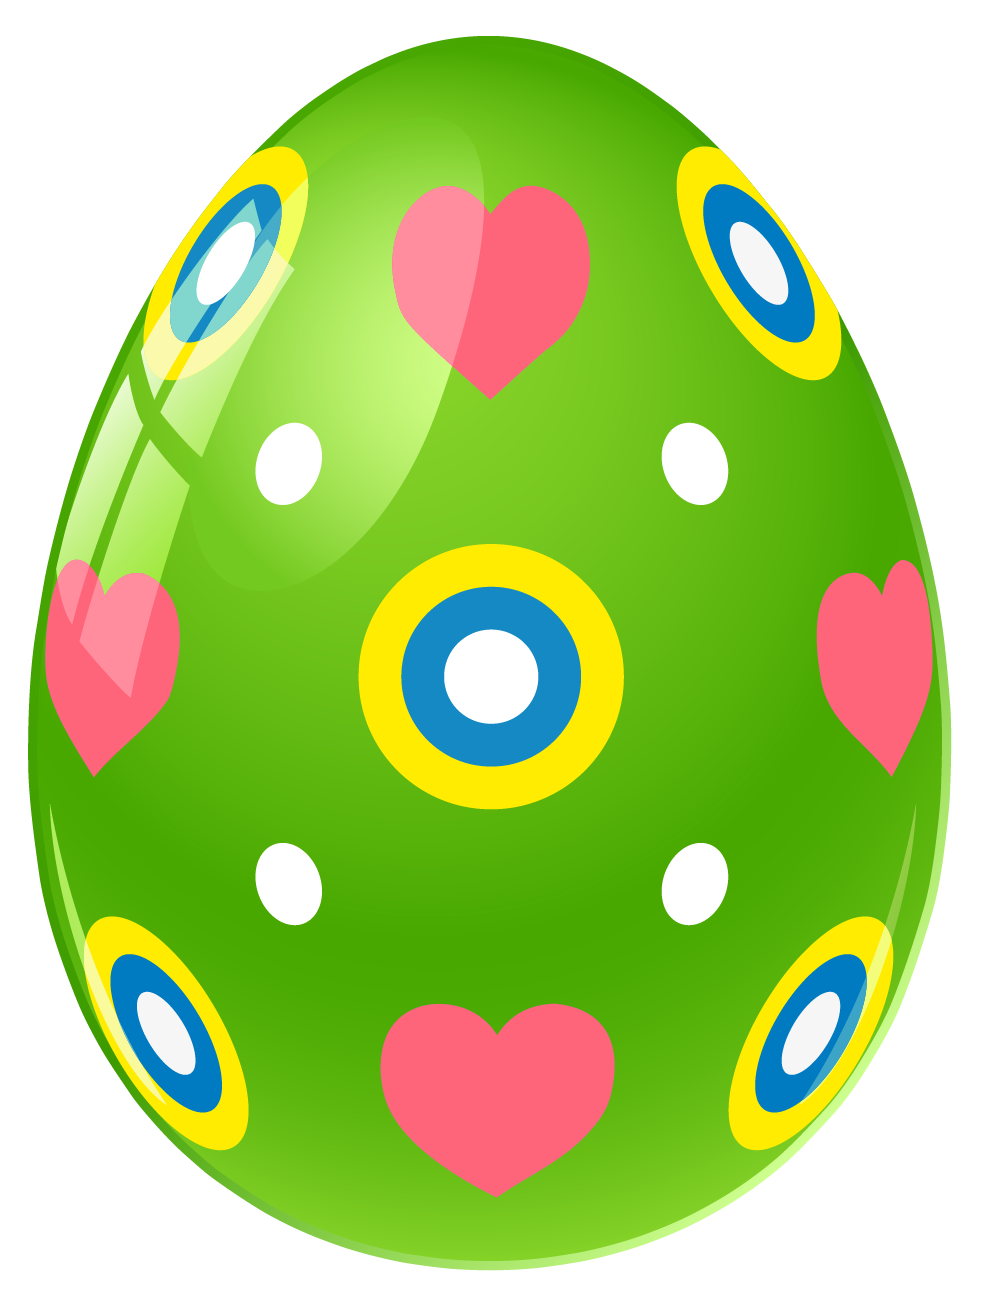 Easter clip colourful. Eggs png transparent images